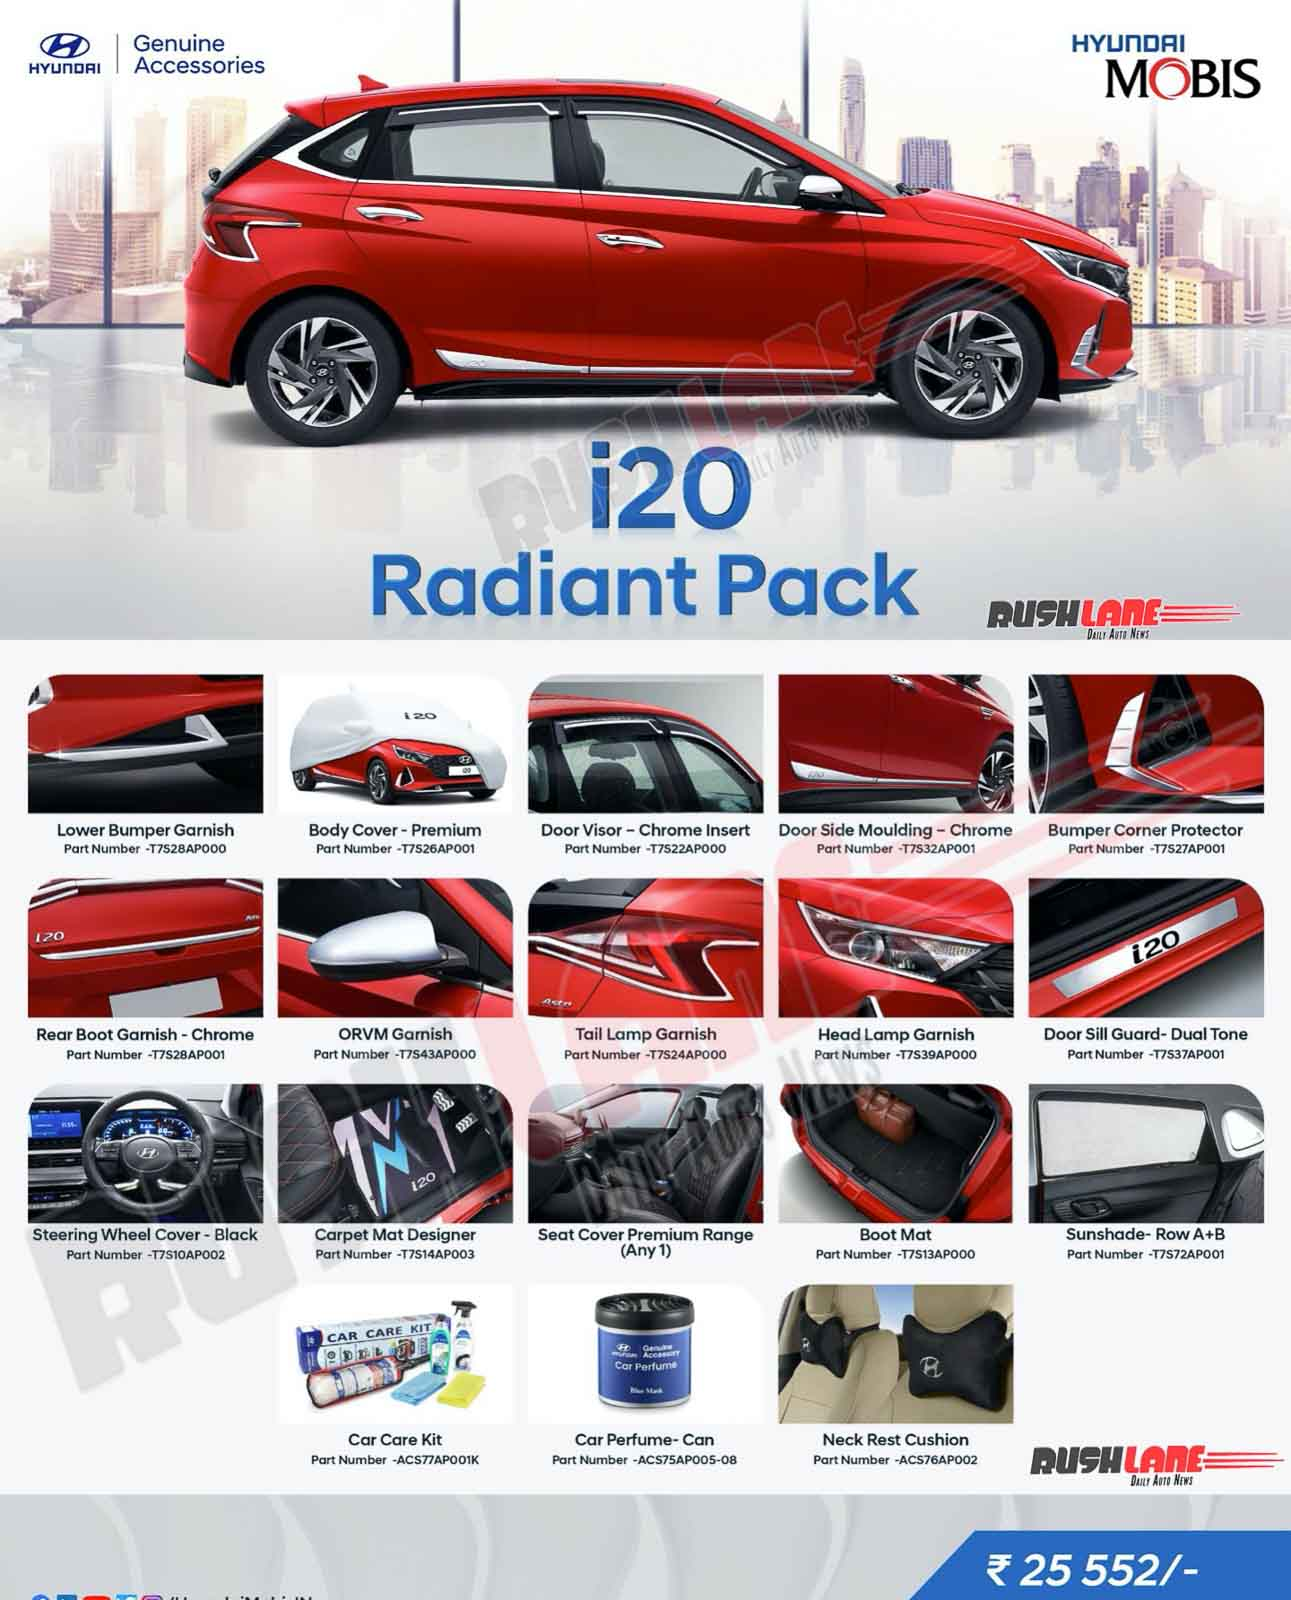 Hyundai i20 Radiant Accessory Pack